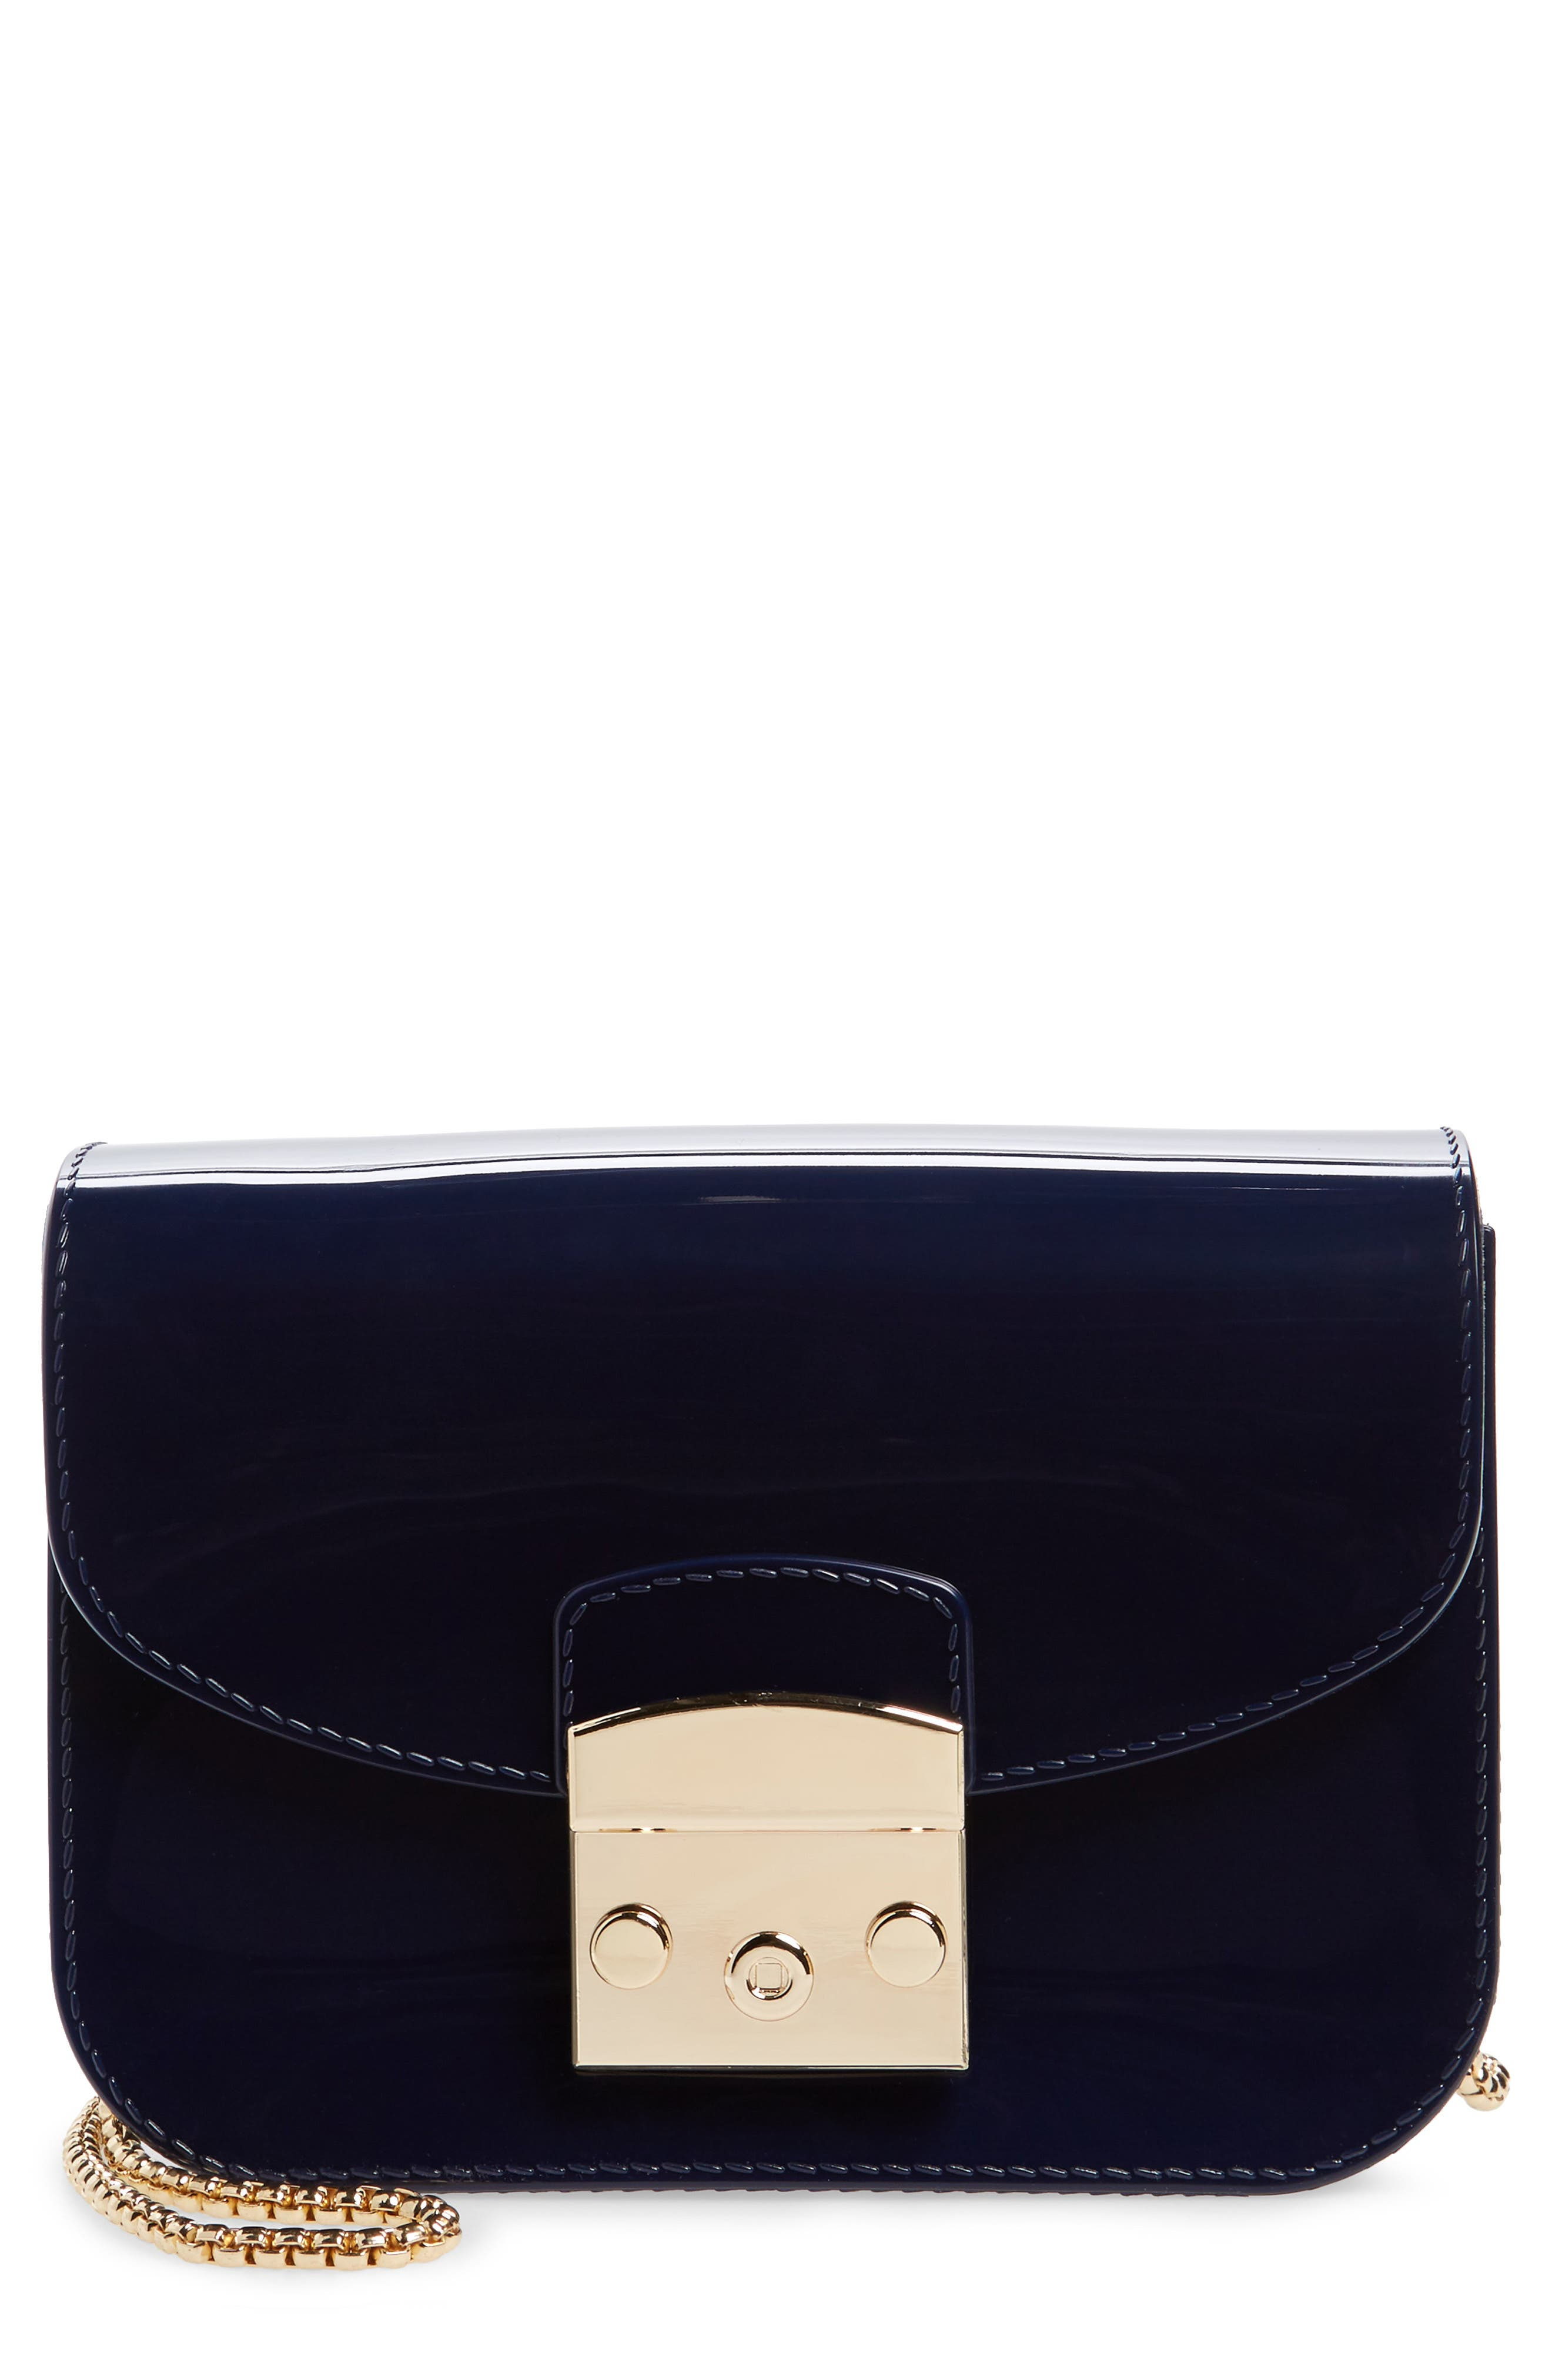 Jelly Shoulder Bag,                             Main thumbnail 1, color,                             Navy